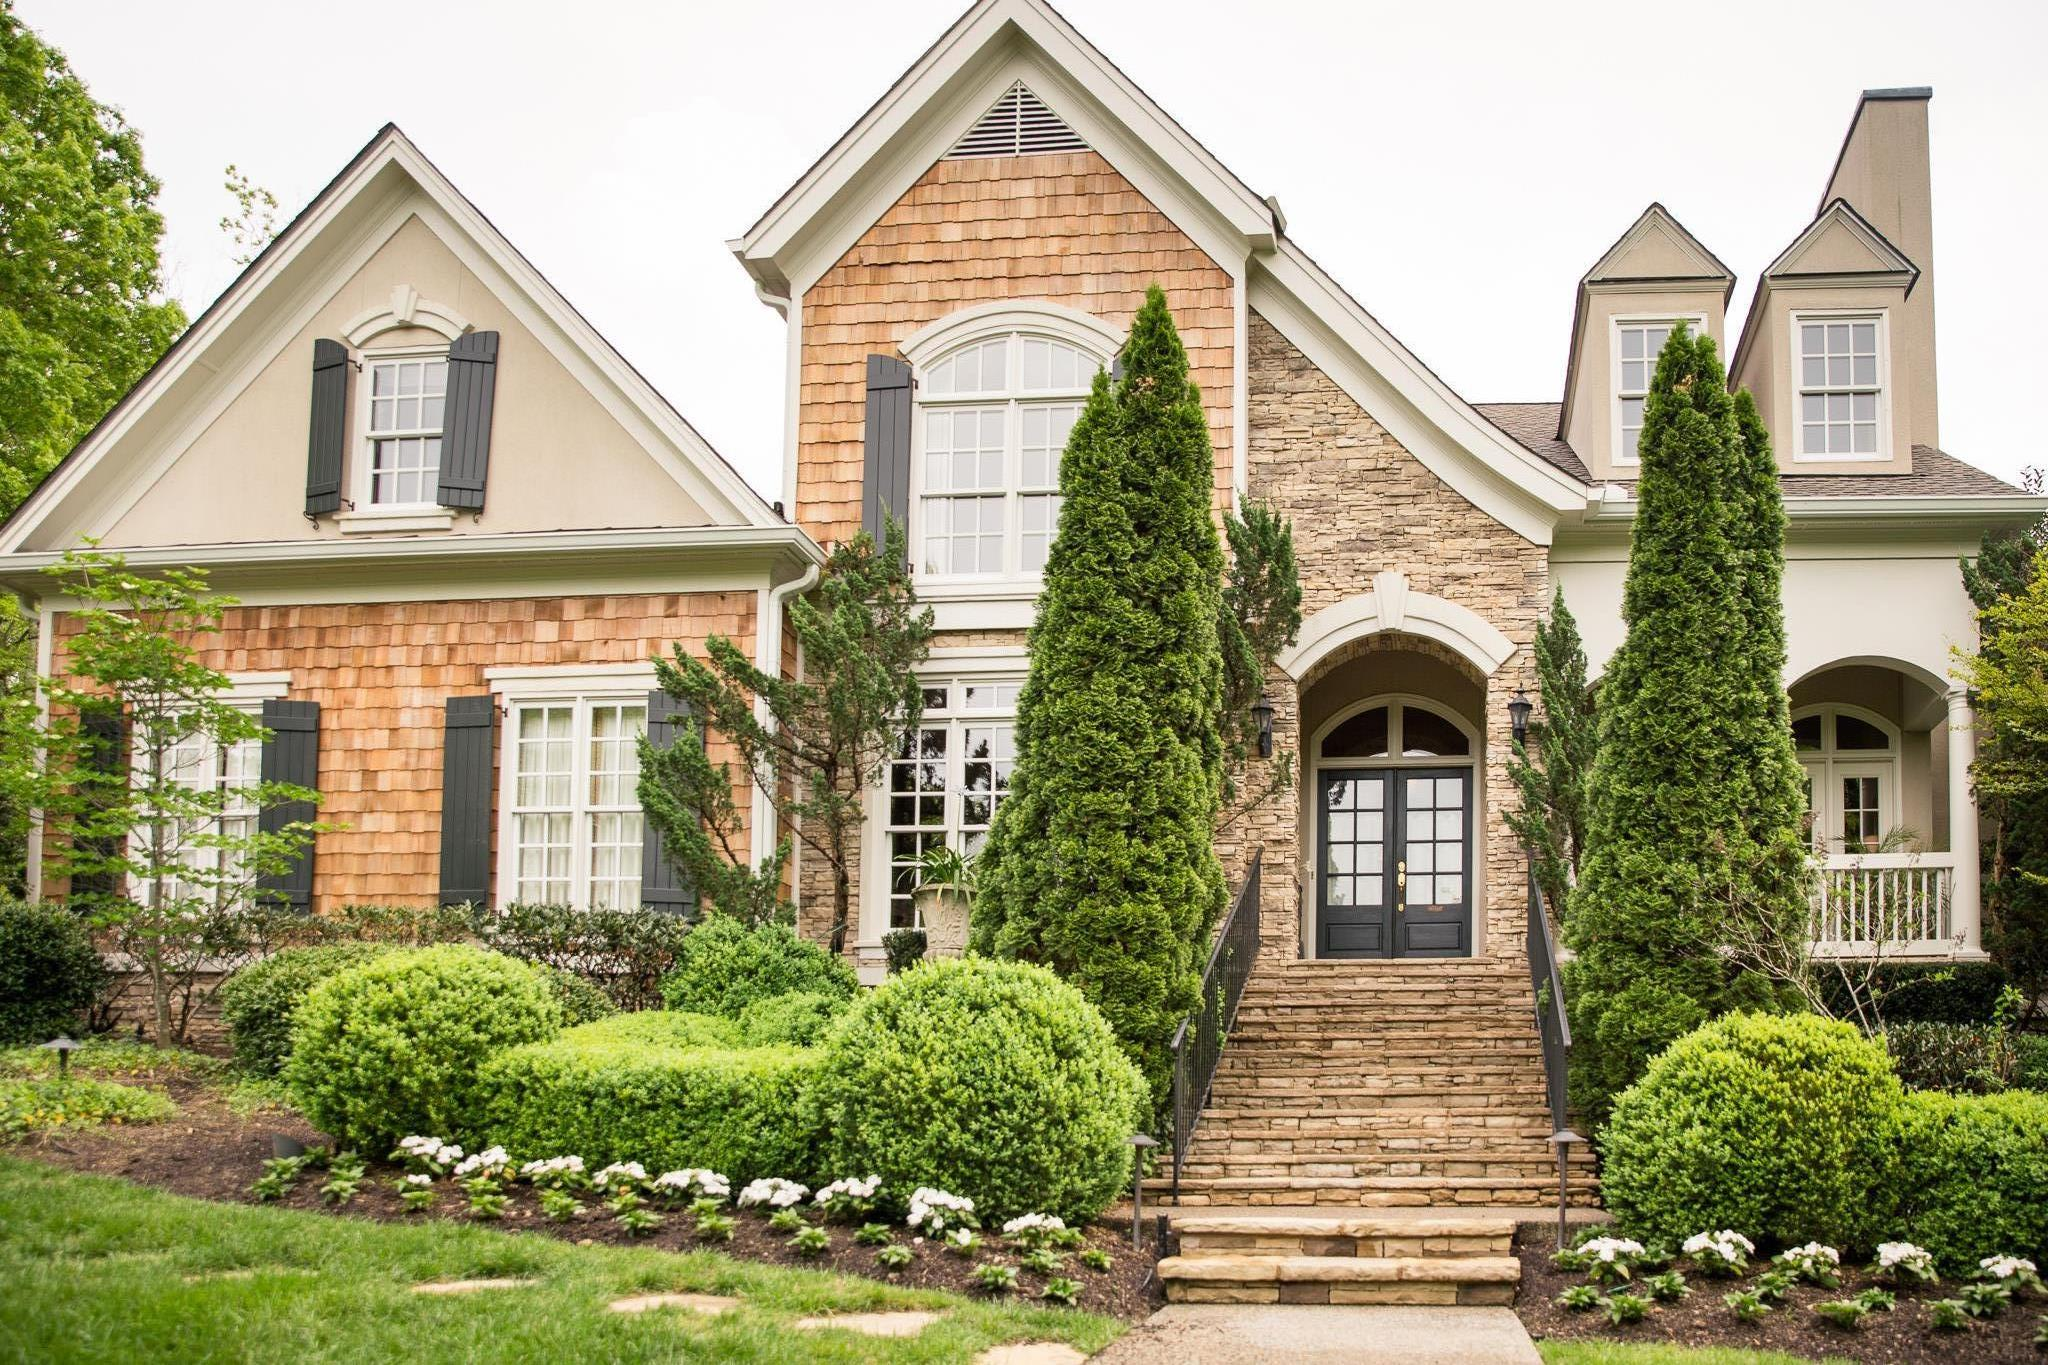 108 Sweethaven Ct, Franklin, TN 37069